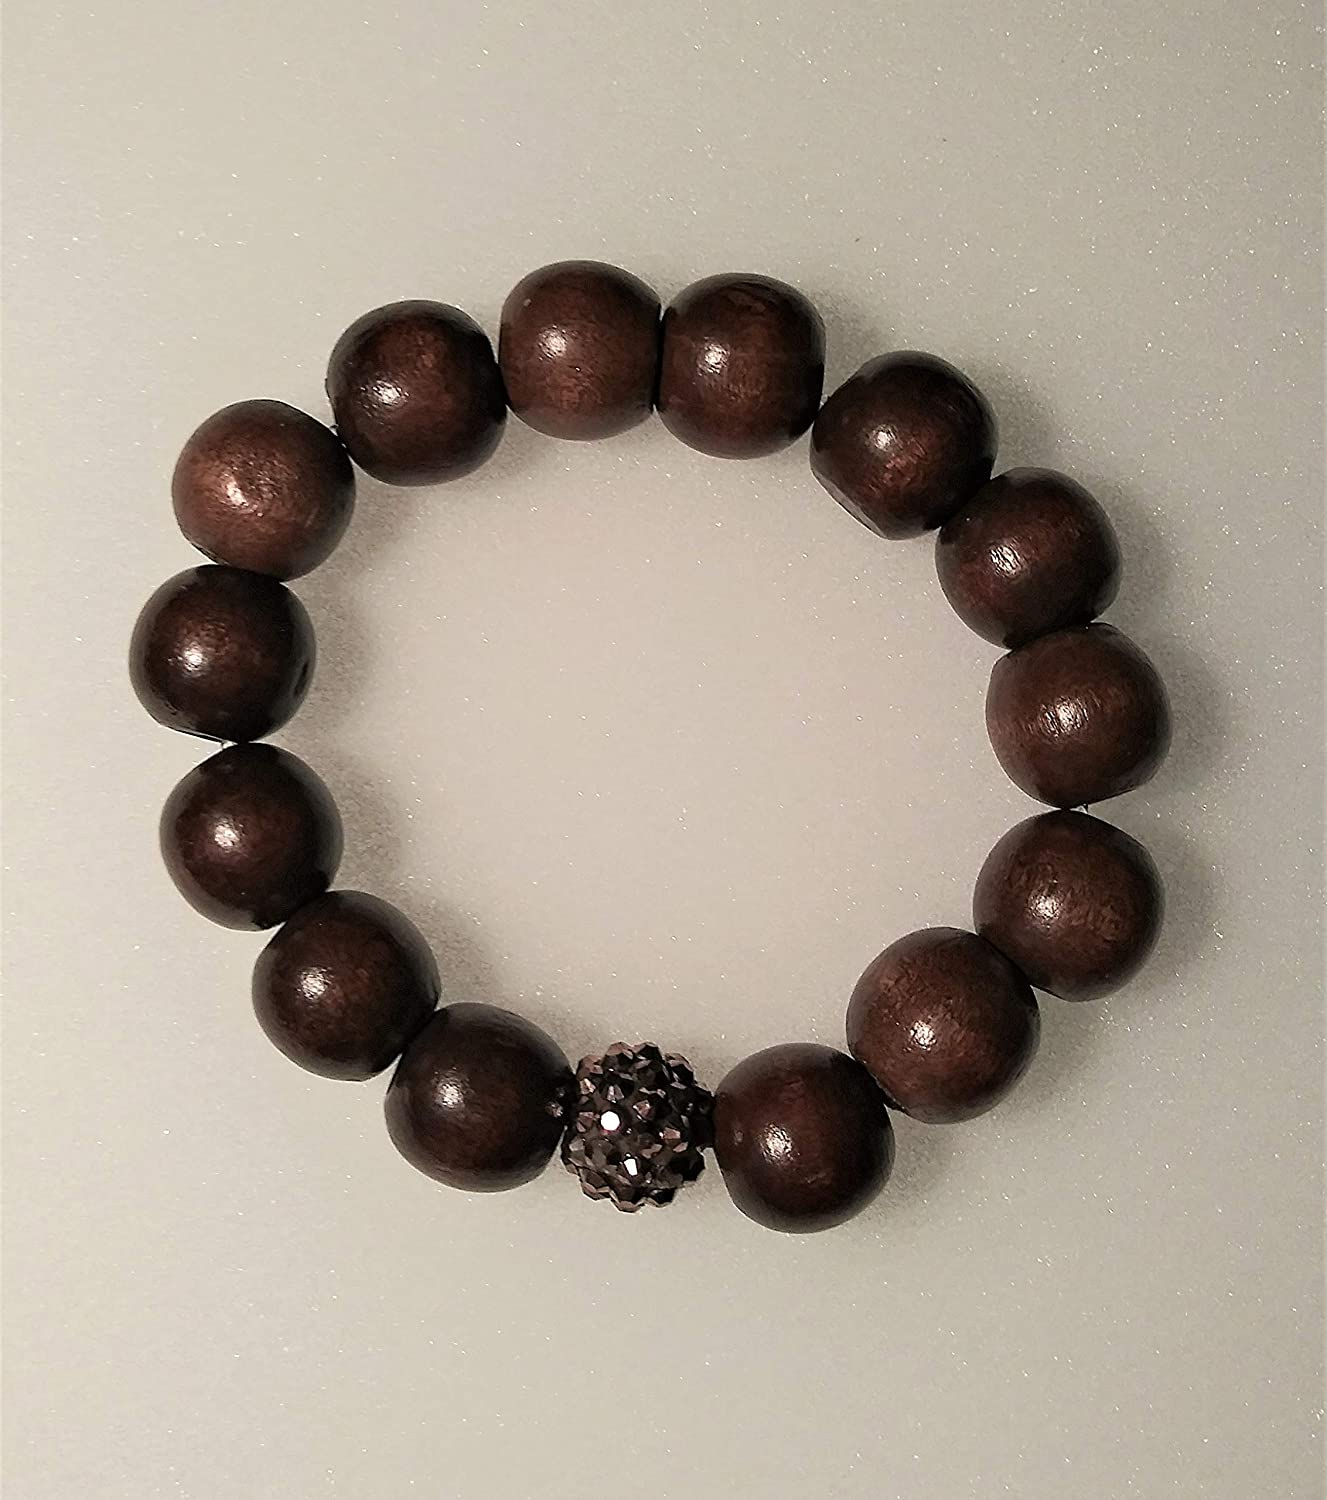 Unisex Wood Beaded Bracelet-8 inch Max 87% excellence OFF Kind A Stretchy-One Of